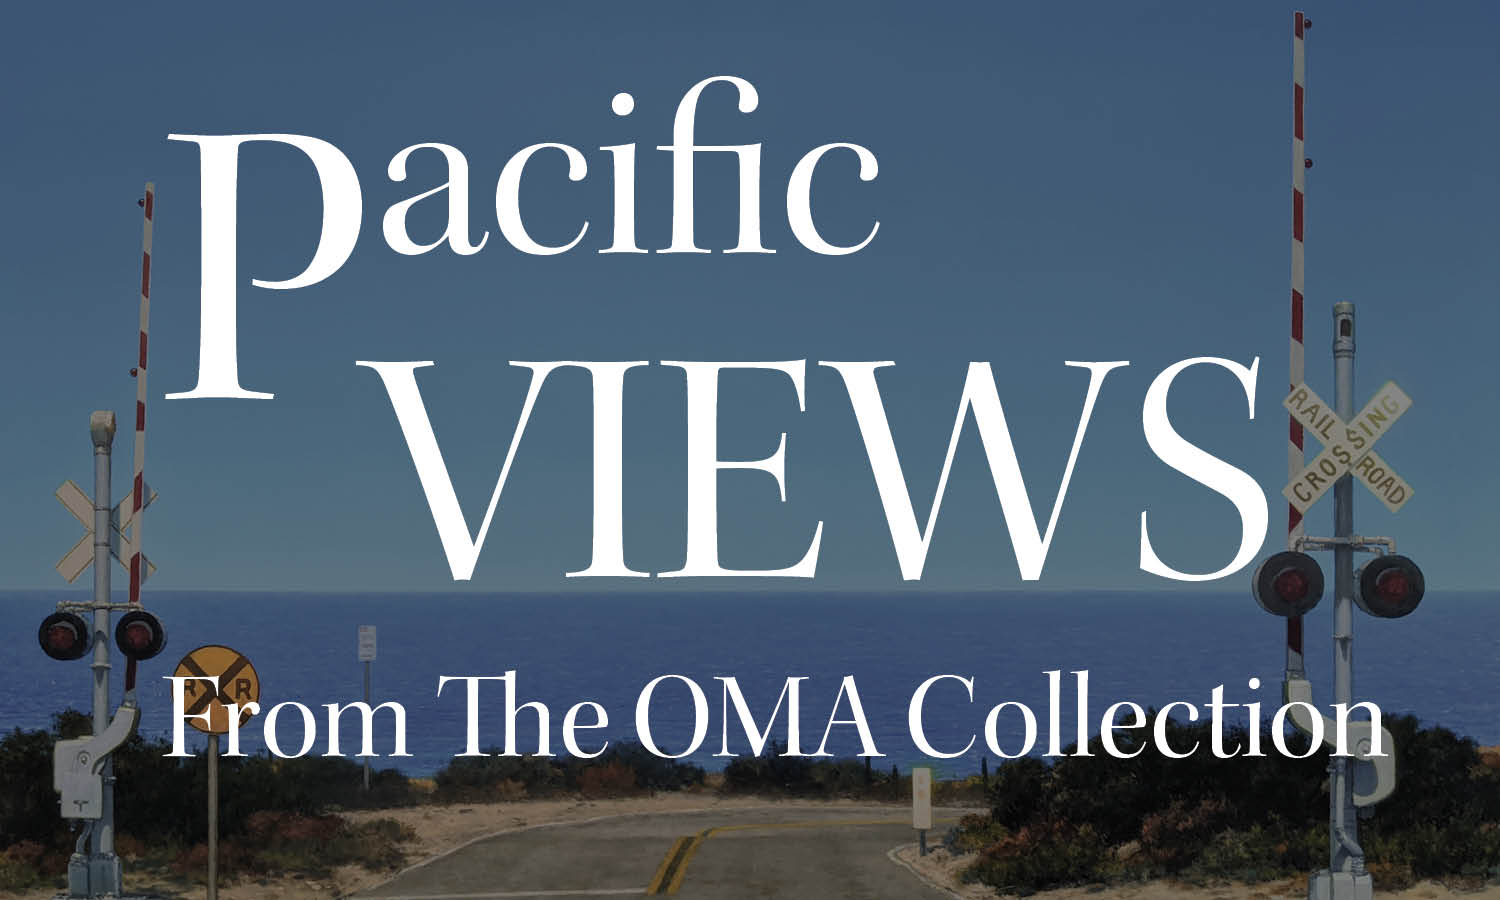 Pacific Views from the OMA Collection